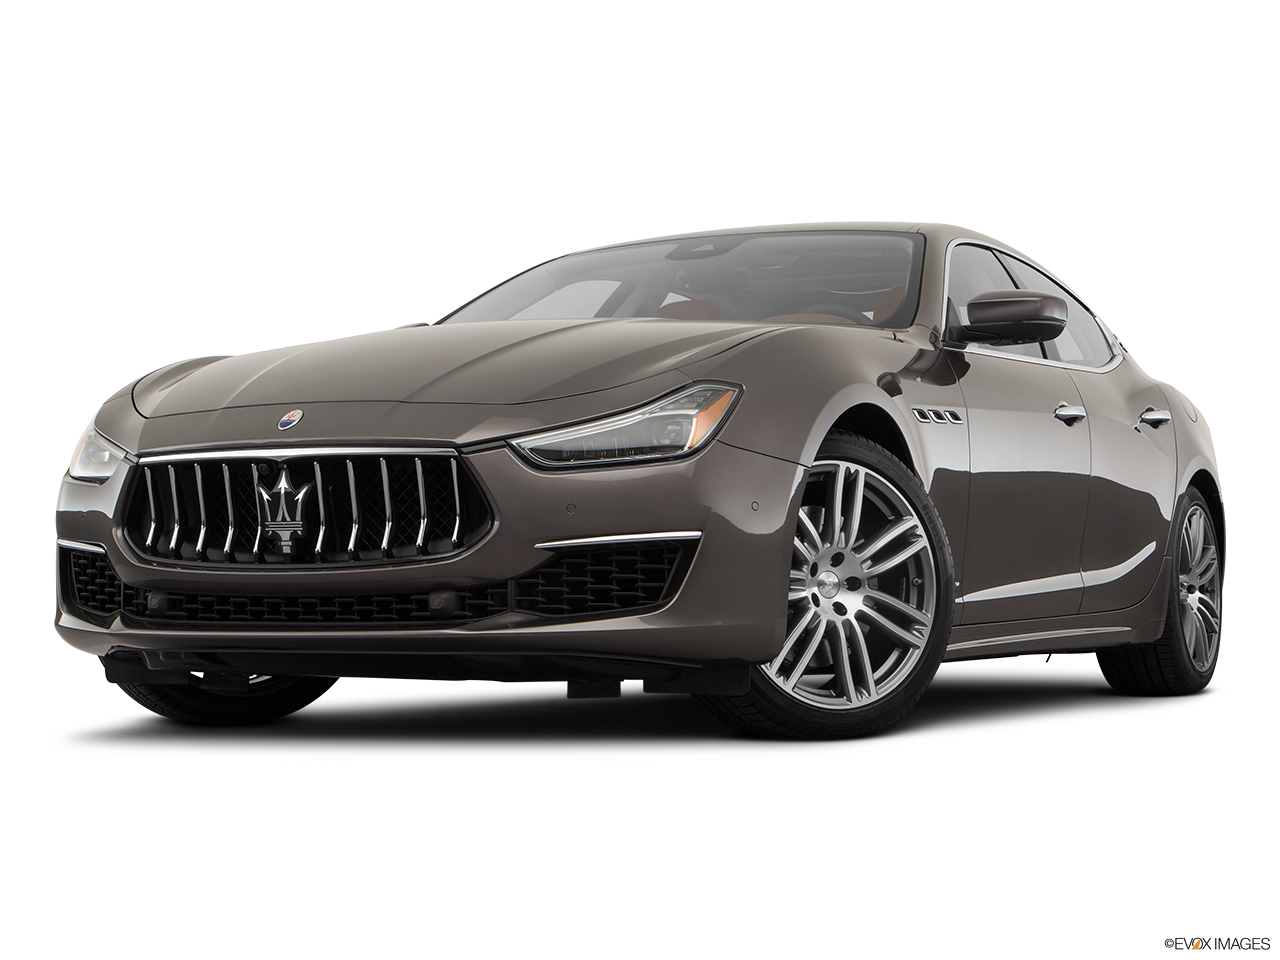 2018 Maserati Ghibli  S Granlusso Front angle view, low wide perspective.